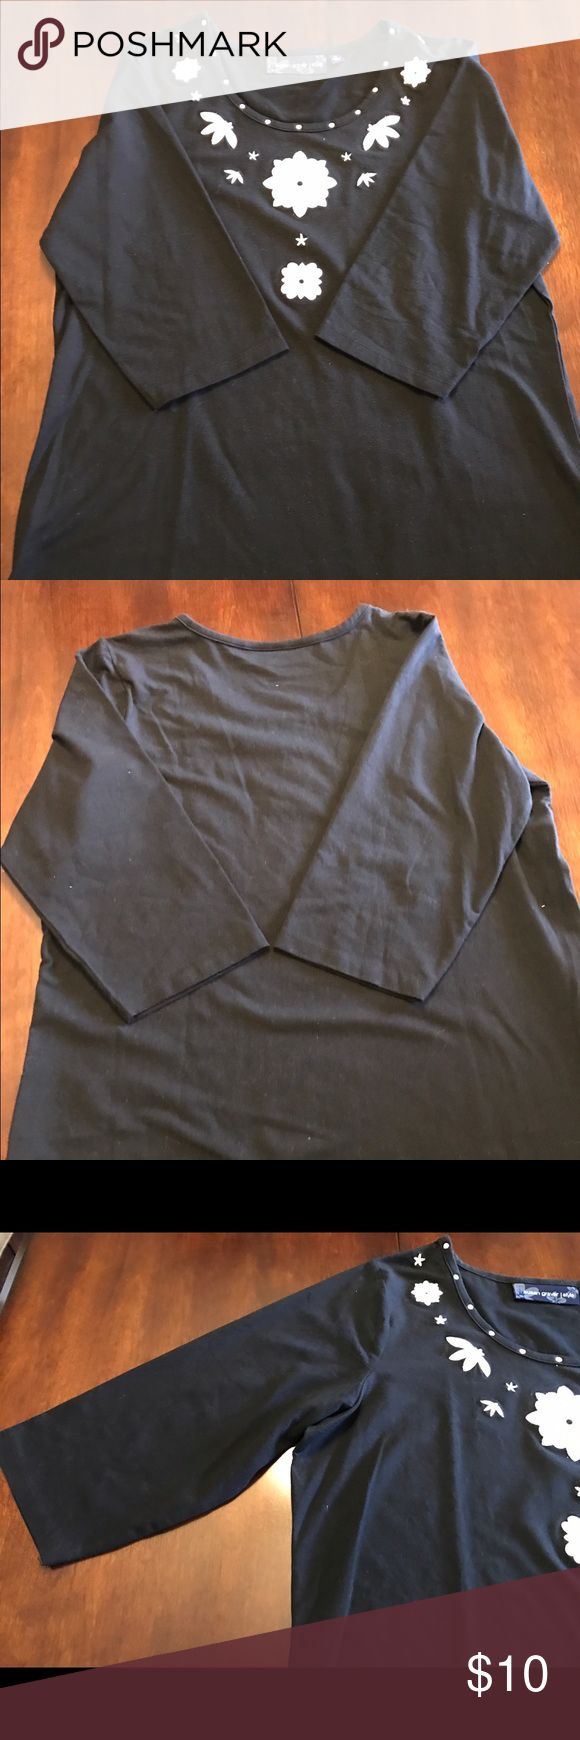 Susan Graver Style black with white details Susan Graver Style black with white details cotton blend tunic 3/4 sleeve. Good condition. Susan Graver Tops Tunics